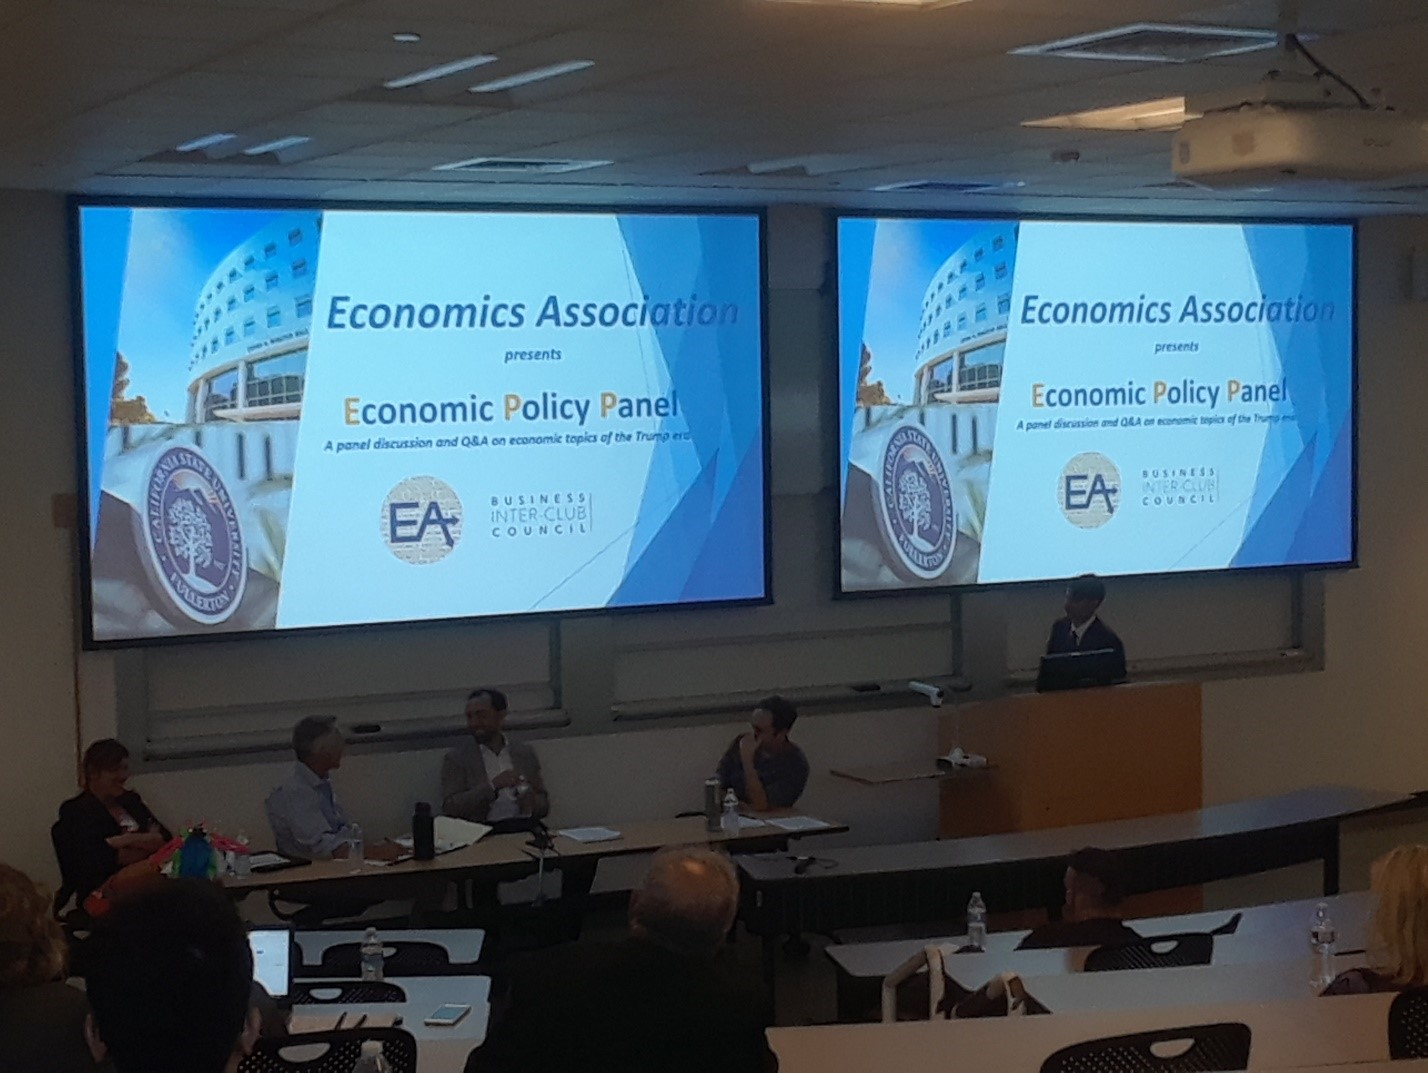 A group of four panelists discuss economic policy in a classroom at the Steven G. Mihaylo Hall at Cal State Fullerton.